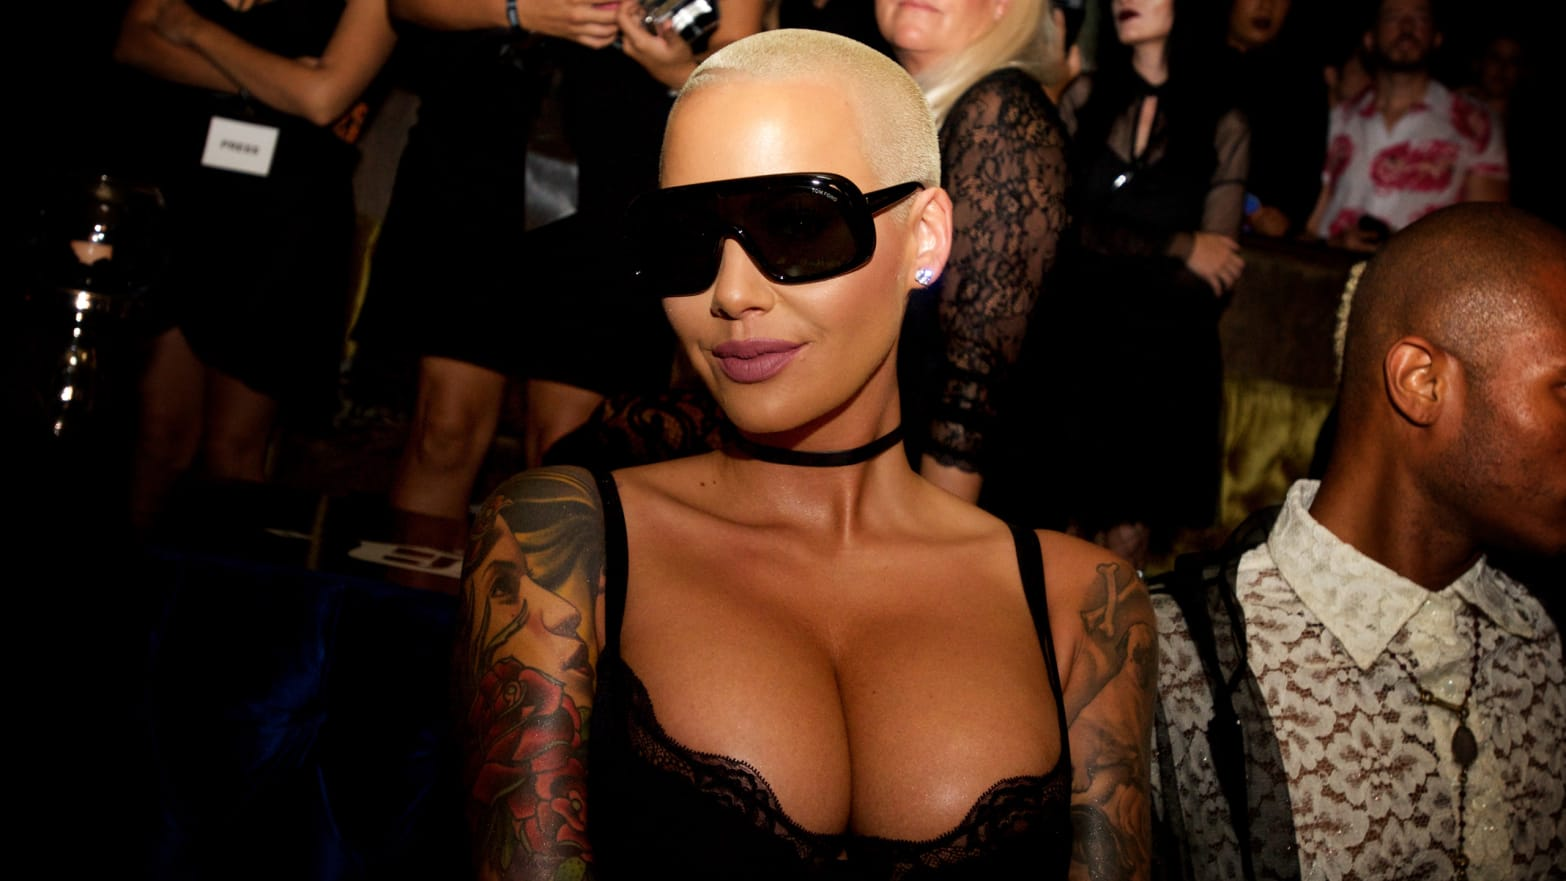 Amber Rose Porn Movie amber rose uncensored: on sex, blac chyna, and her time's up